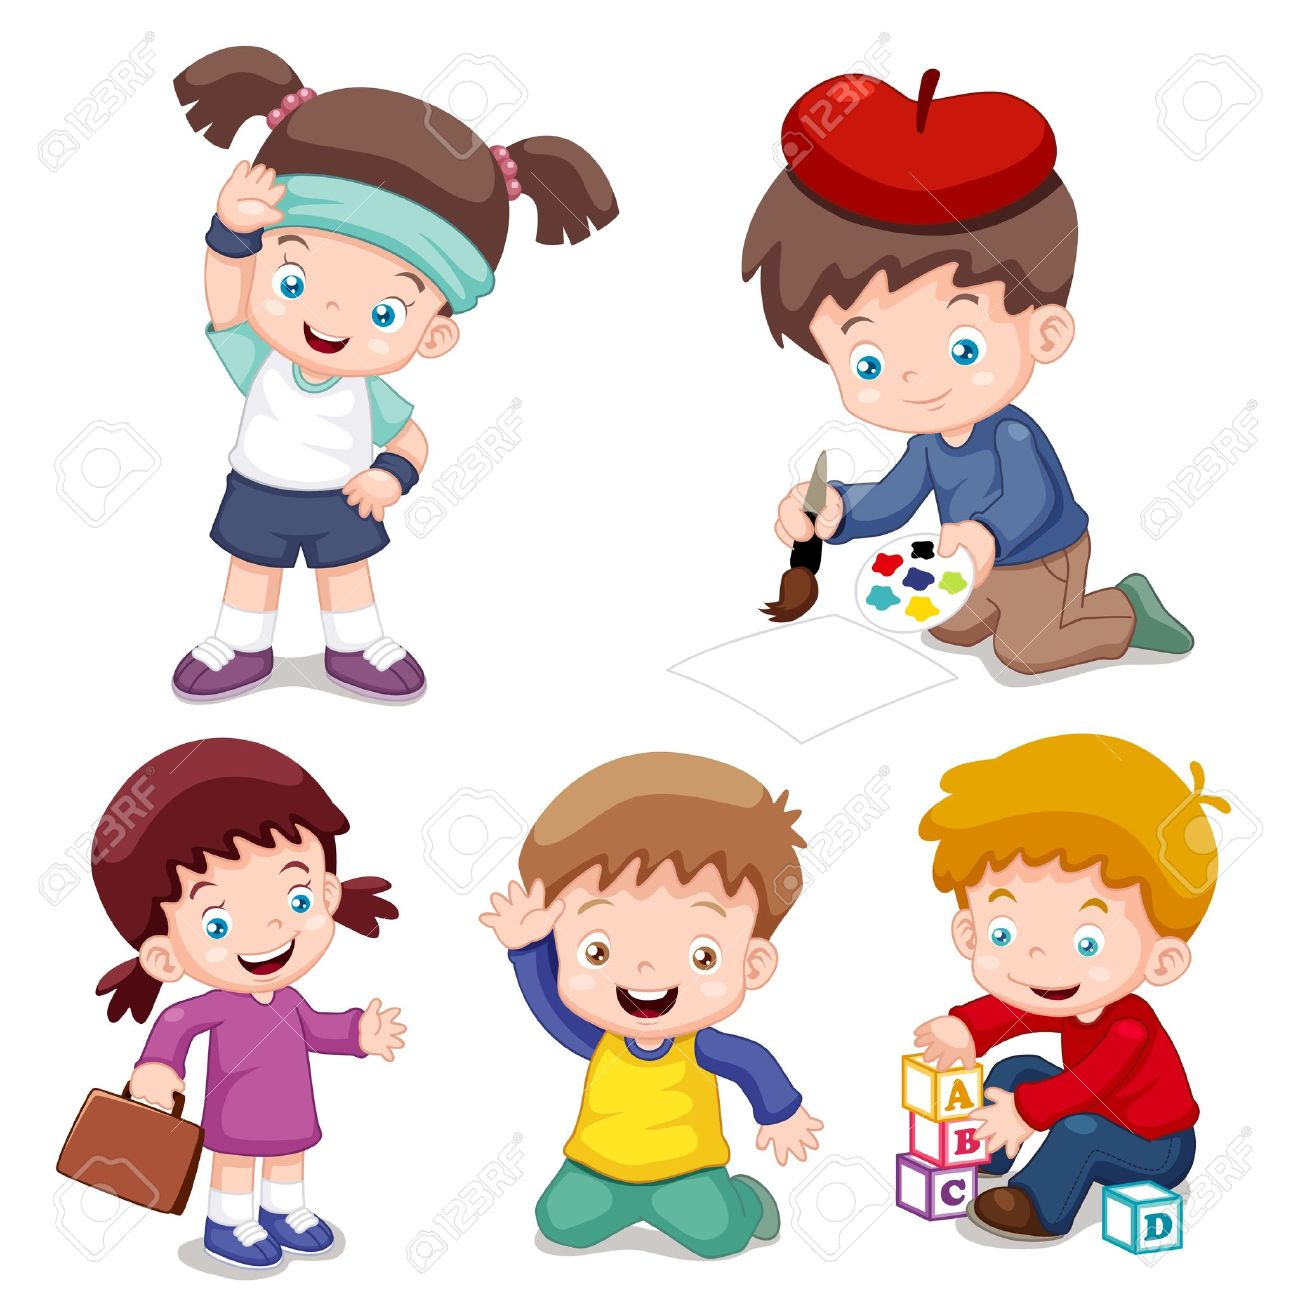 illustration of characters kids cartoon vector royalty free